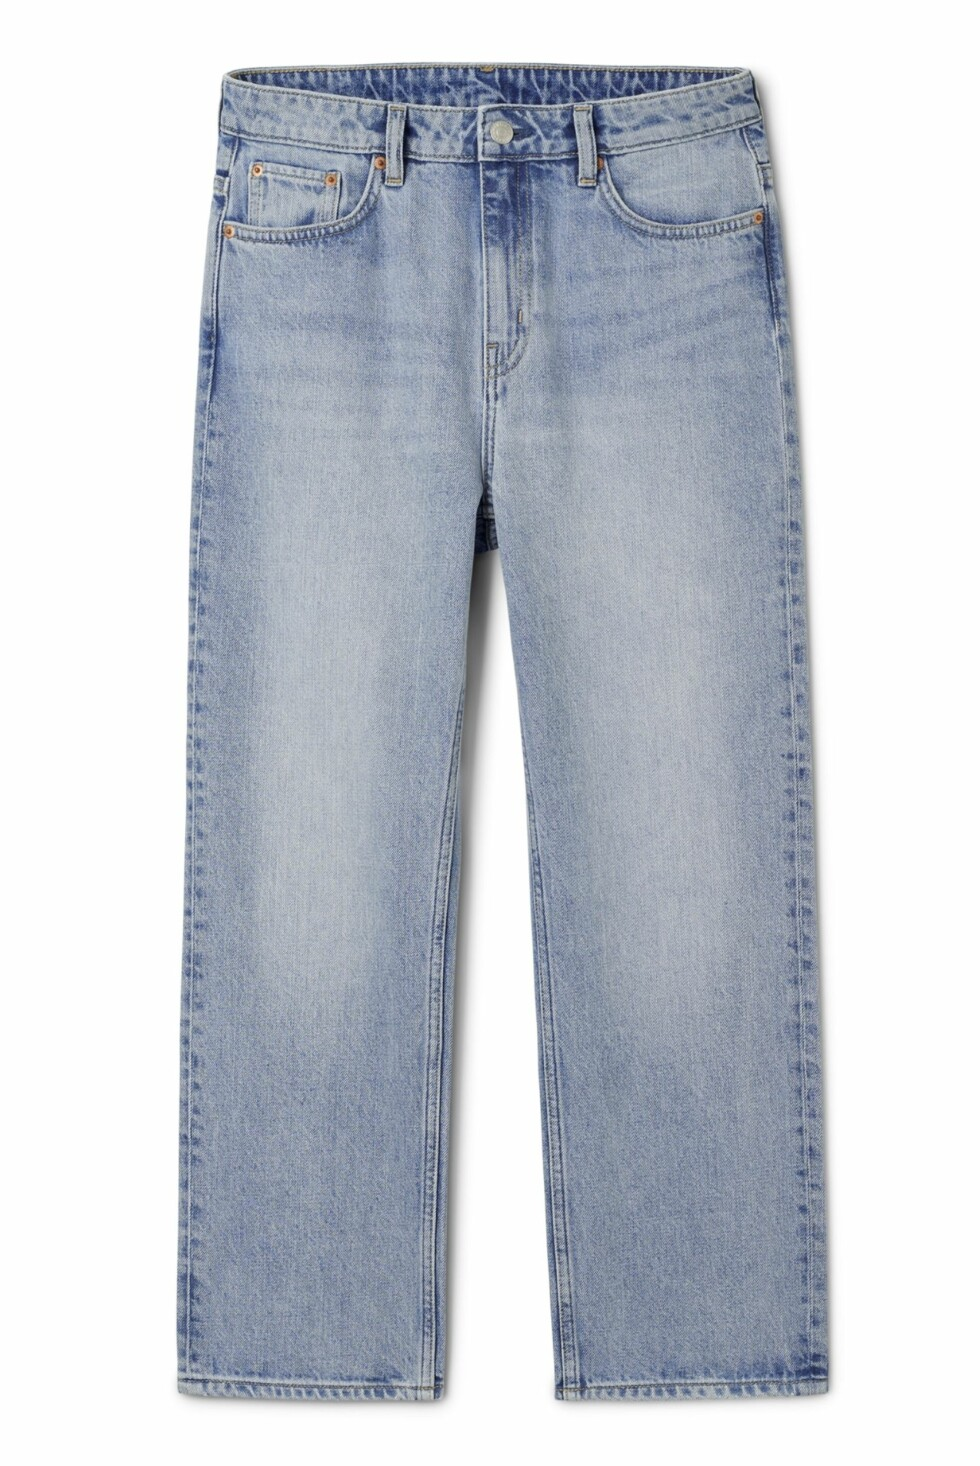 Jeans fra Weekday |500,-| http://shop.weekday.com/se/Womens_shop/New_Arrivals/Voyage_Wow_Blue/1342358-10593970.1?image=1328240#c-47958